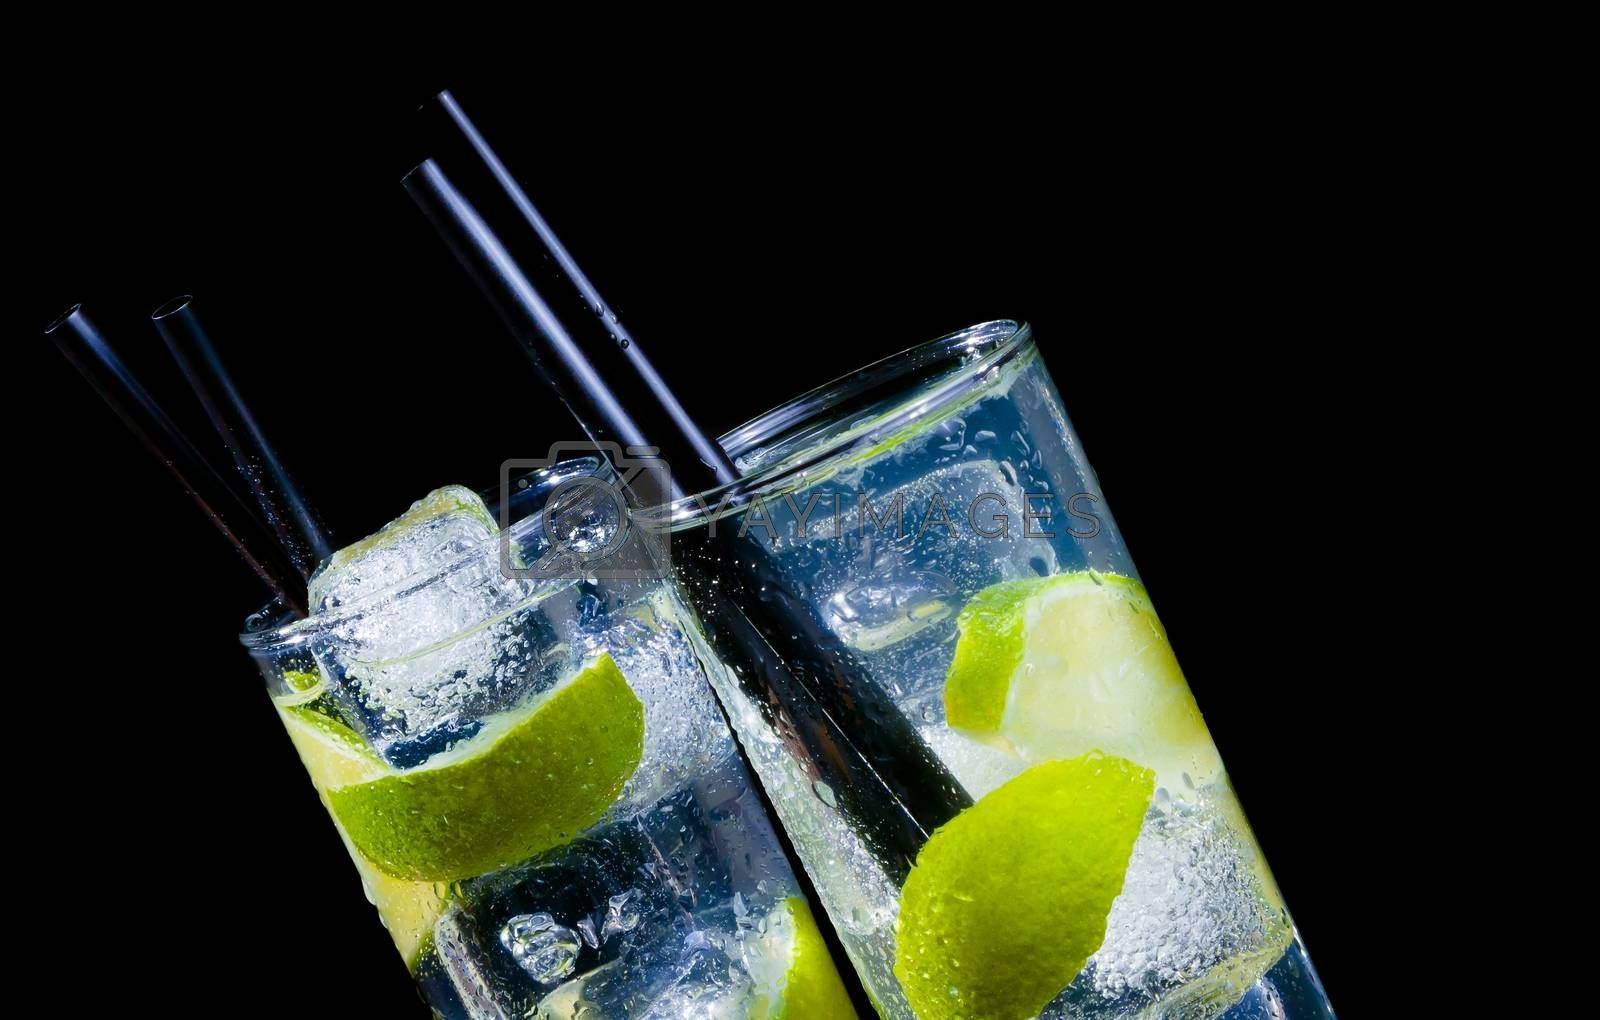 two glasses with cocktail and ice with lime slice on black background with space for text by donfiore